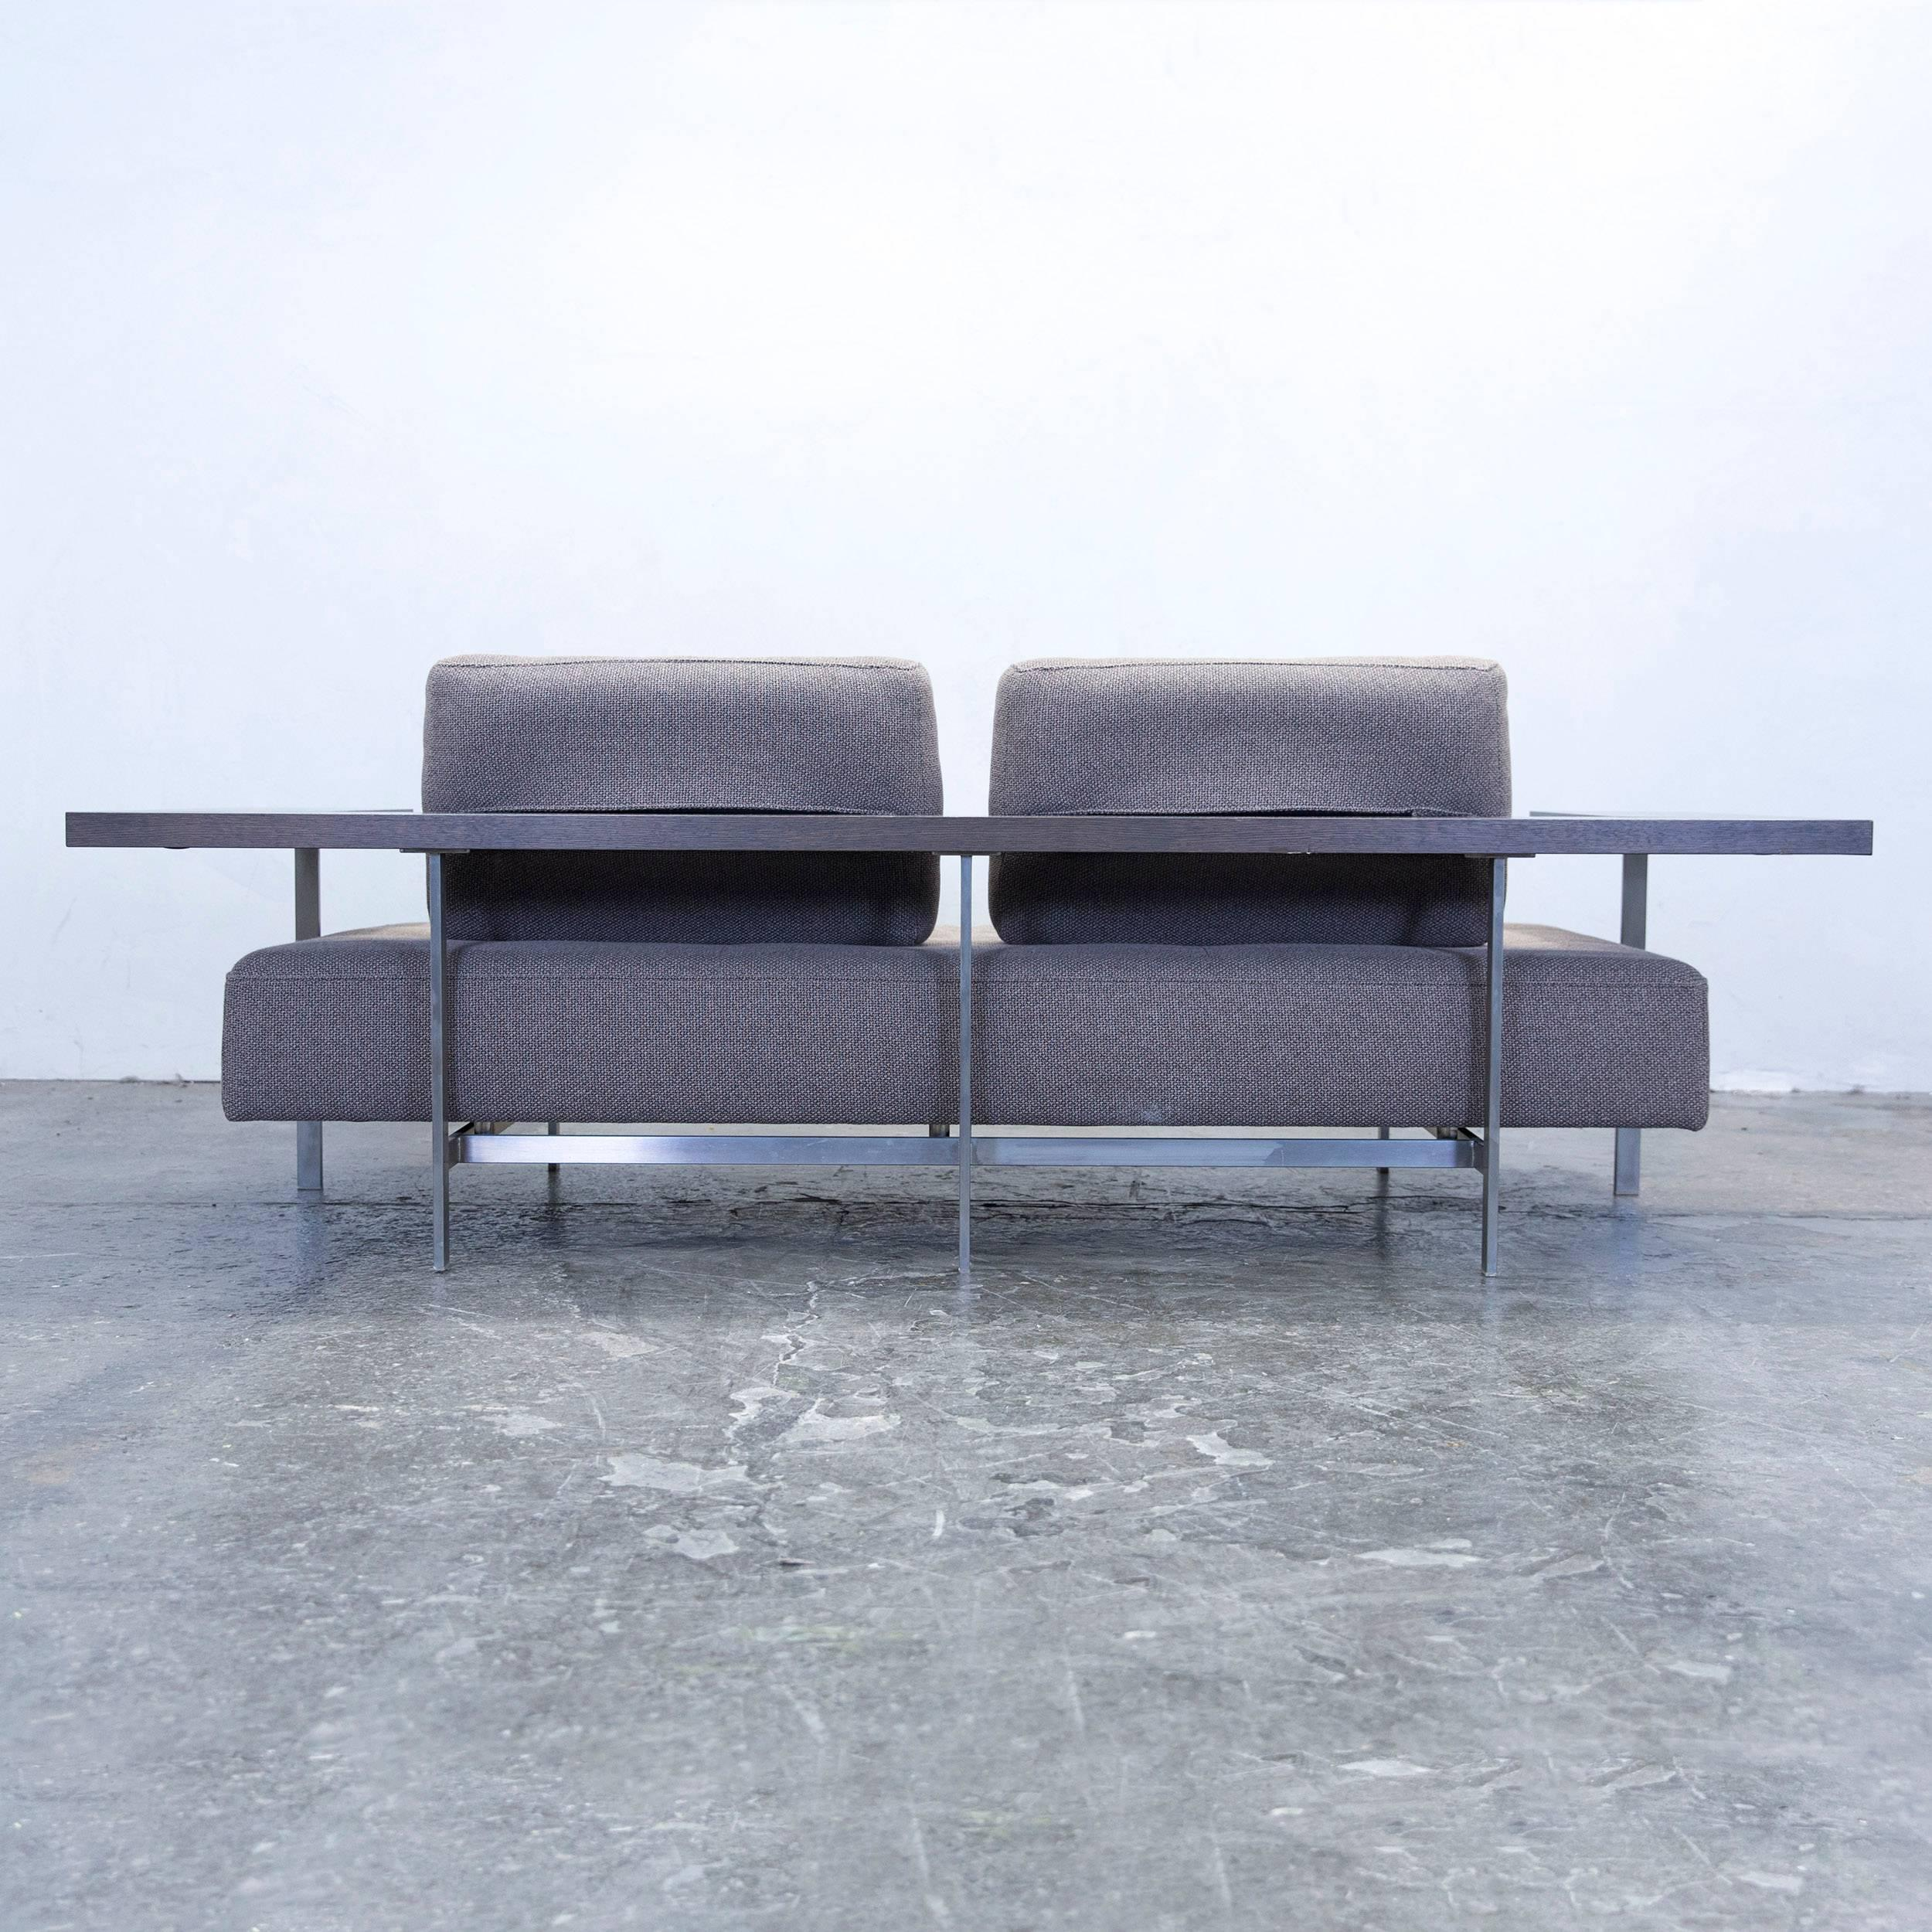 furniture rolf benz. Rolf Benz Dono 6100 Designer Sofa Grey Fabric Two-Seat Couch Modern At 1stdibs Furniture